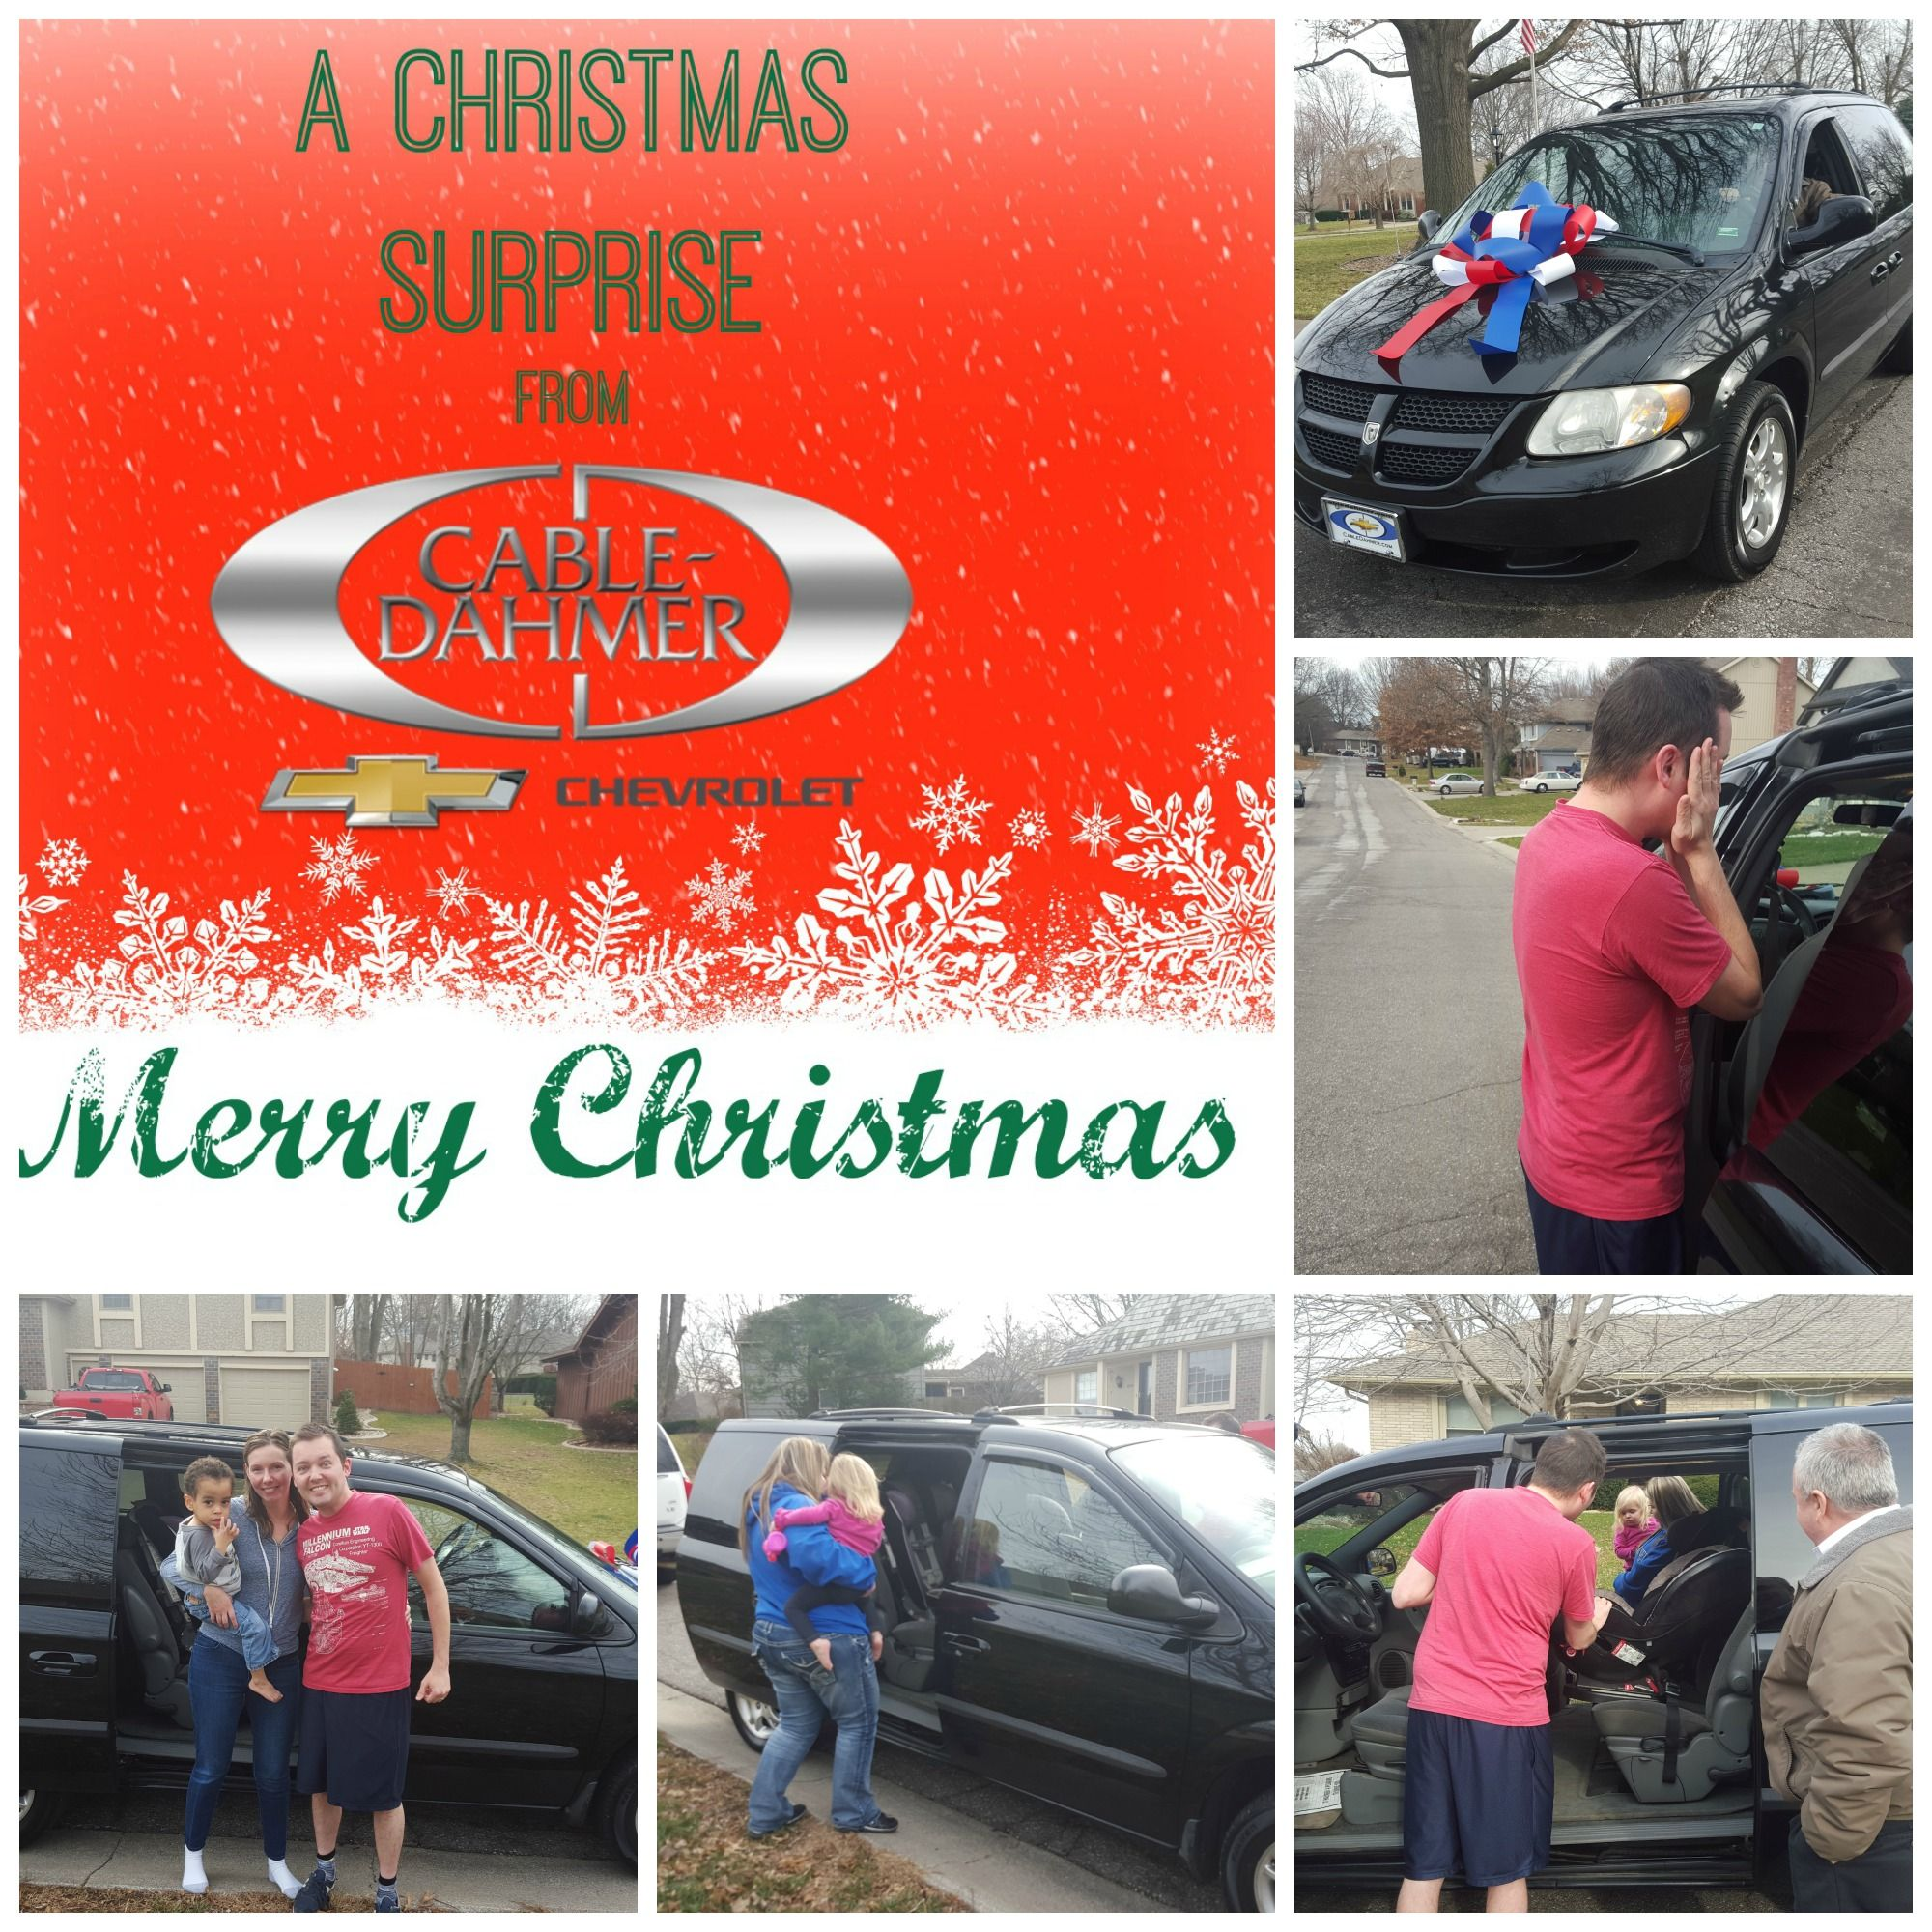 Big Christmas Surprise Cable Dahmer Chevrolet donated a Van for a